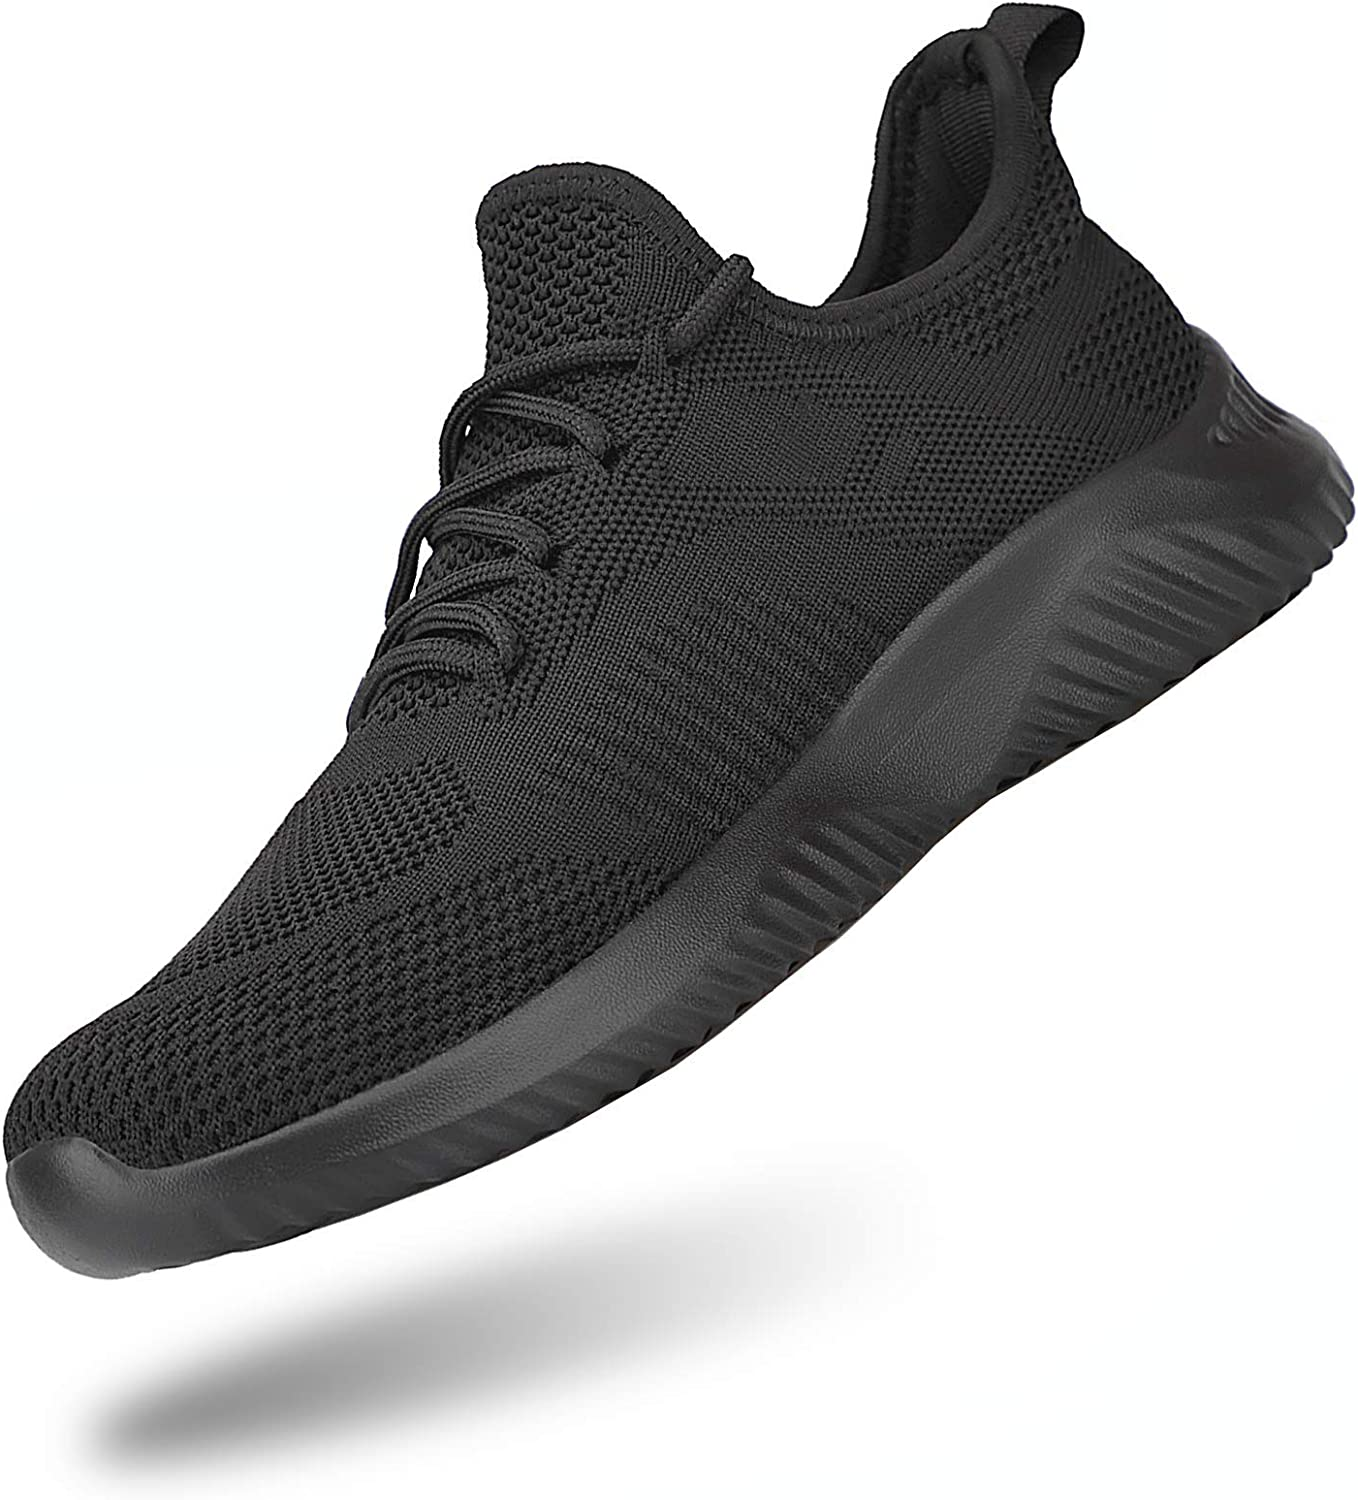 Sumotia Over item handling Sneakers for Men Breathable Super sale fo Shoes Lightweight Walking